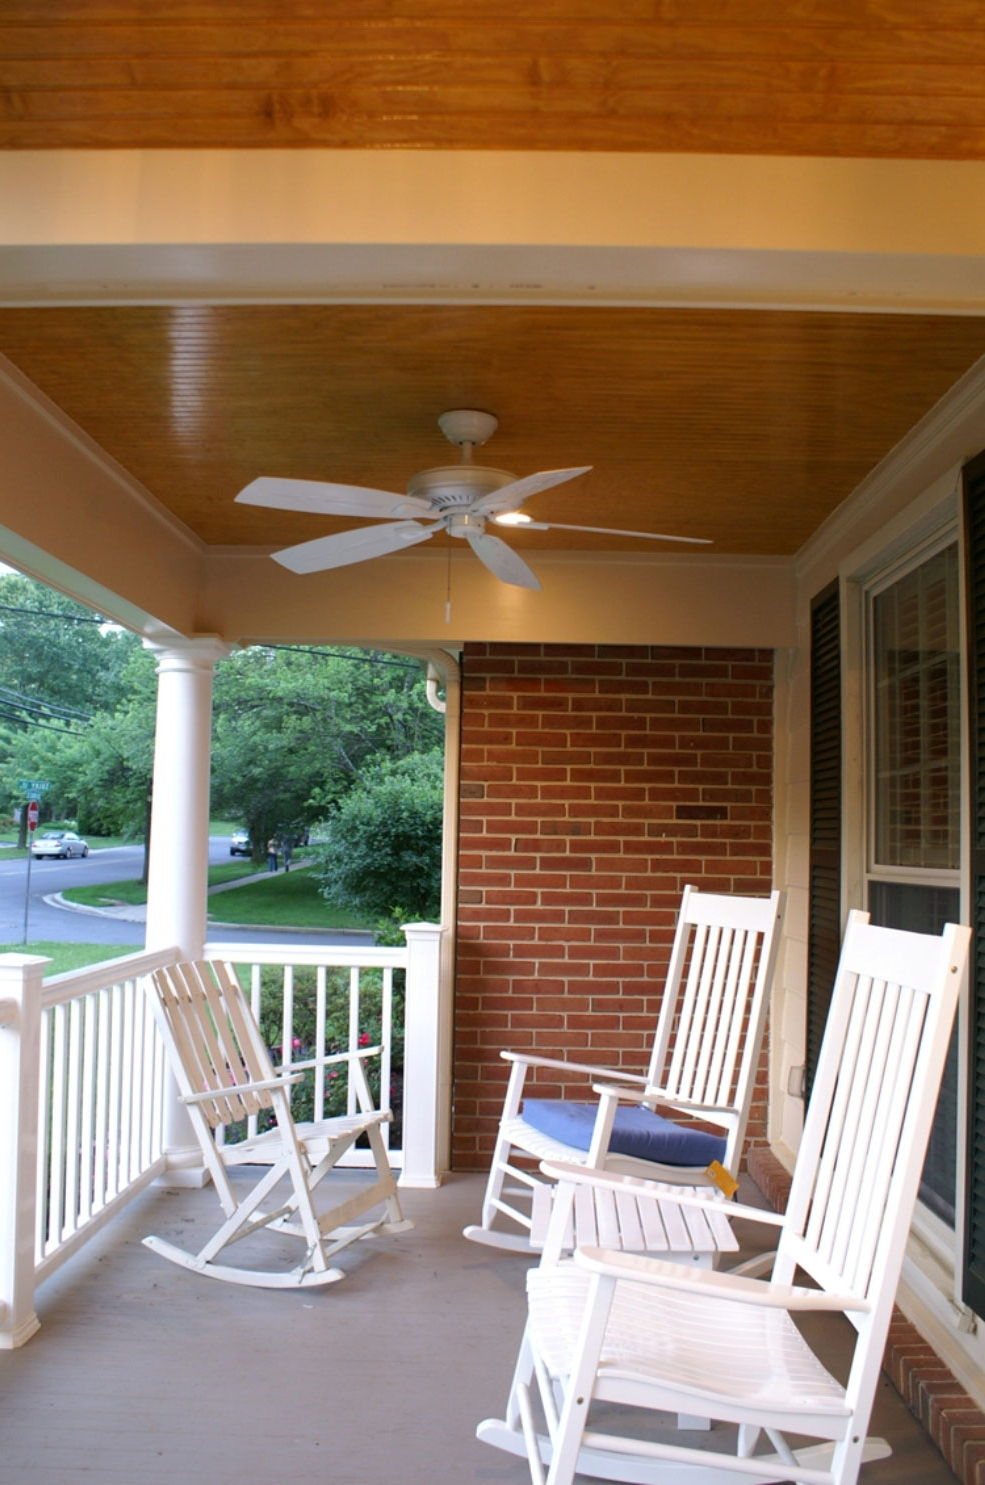 Outdoor Ceiling Fans For Porch Intended For Most Current Ceiling: Glamorous Outdoor Ceiling Fans Without Lights Lowes Ceiling (Gallery 13 of 20)